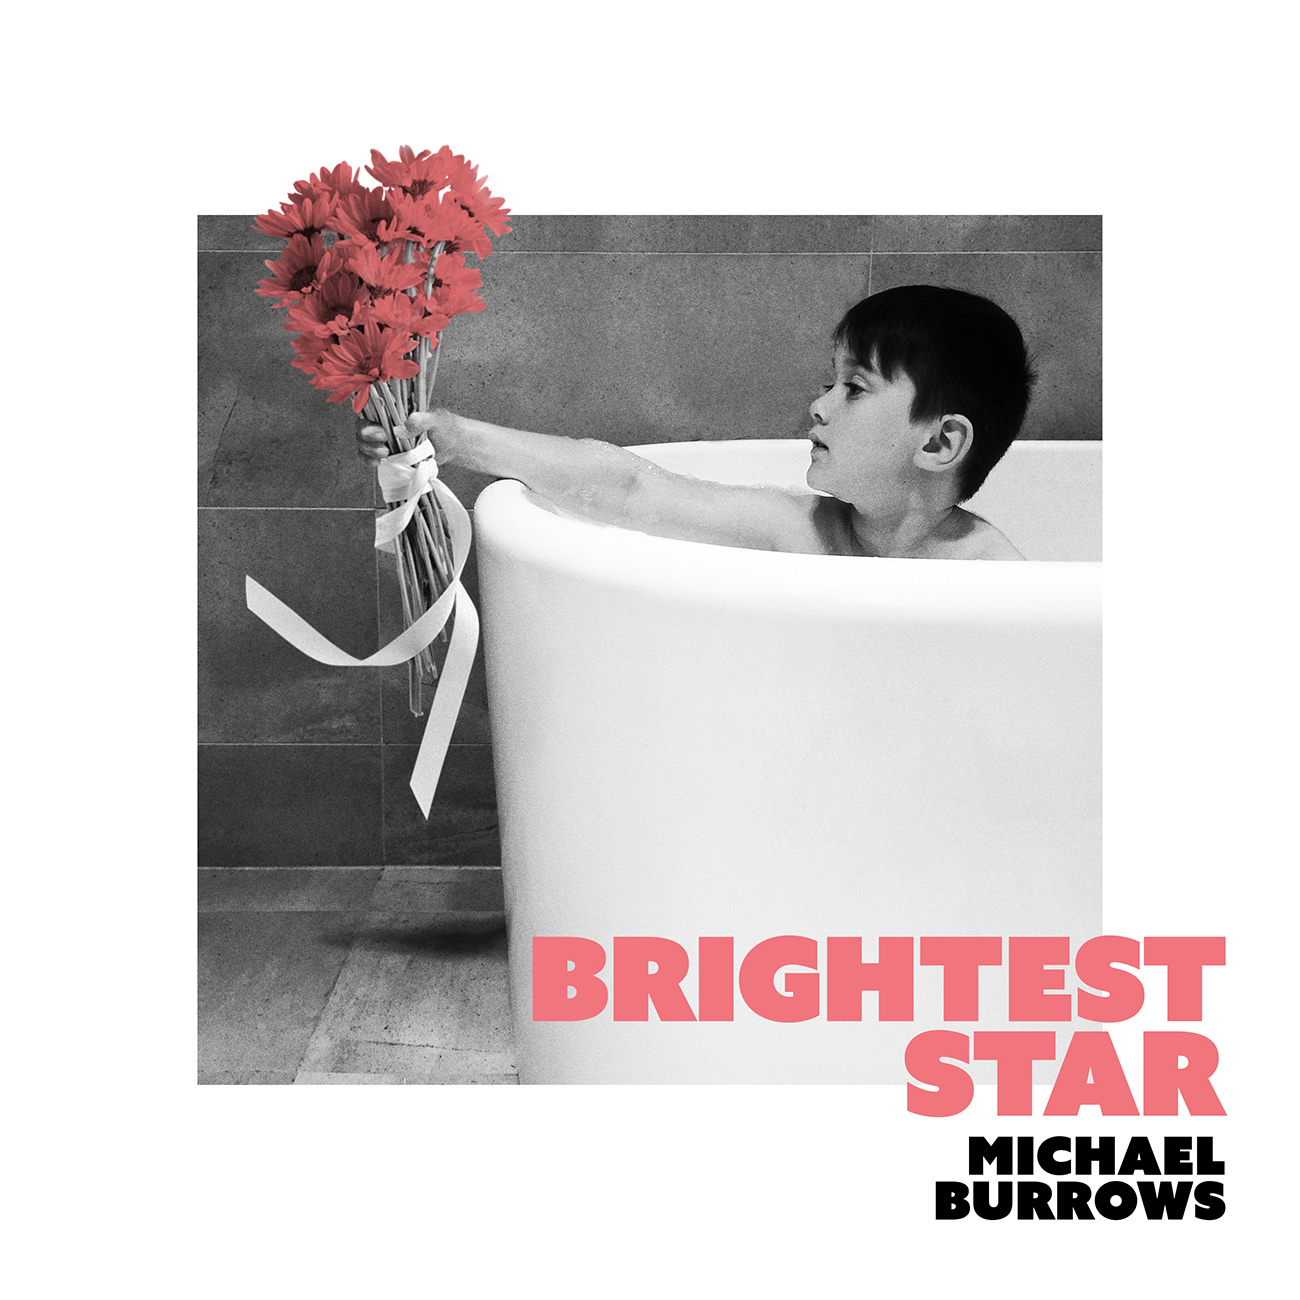 Brightest Star – New Release by Michael Burrows